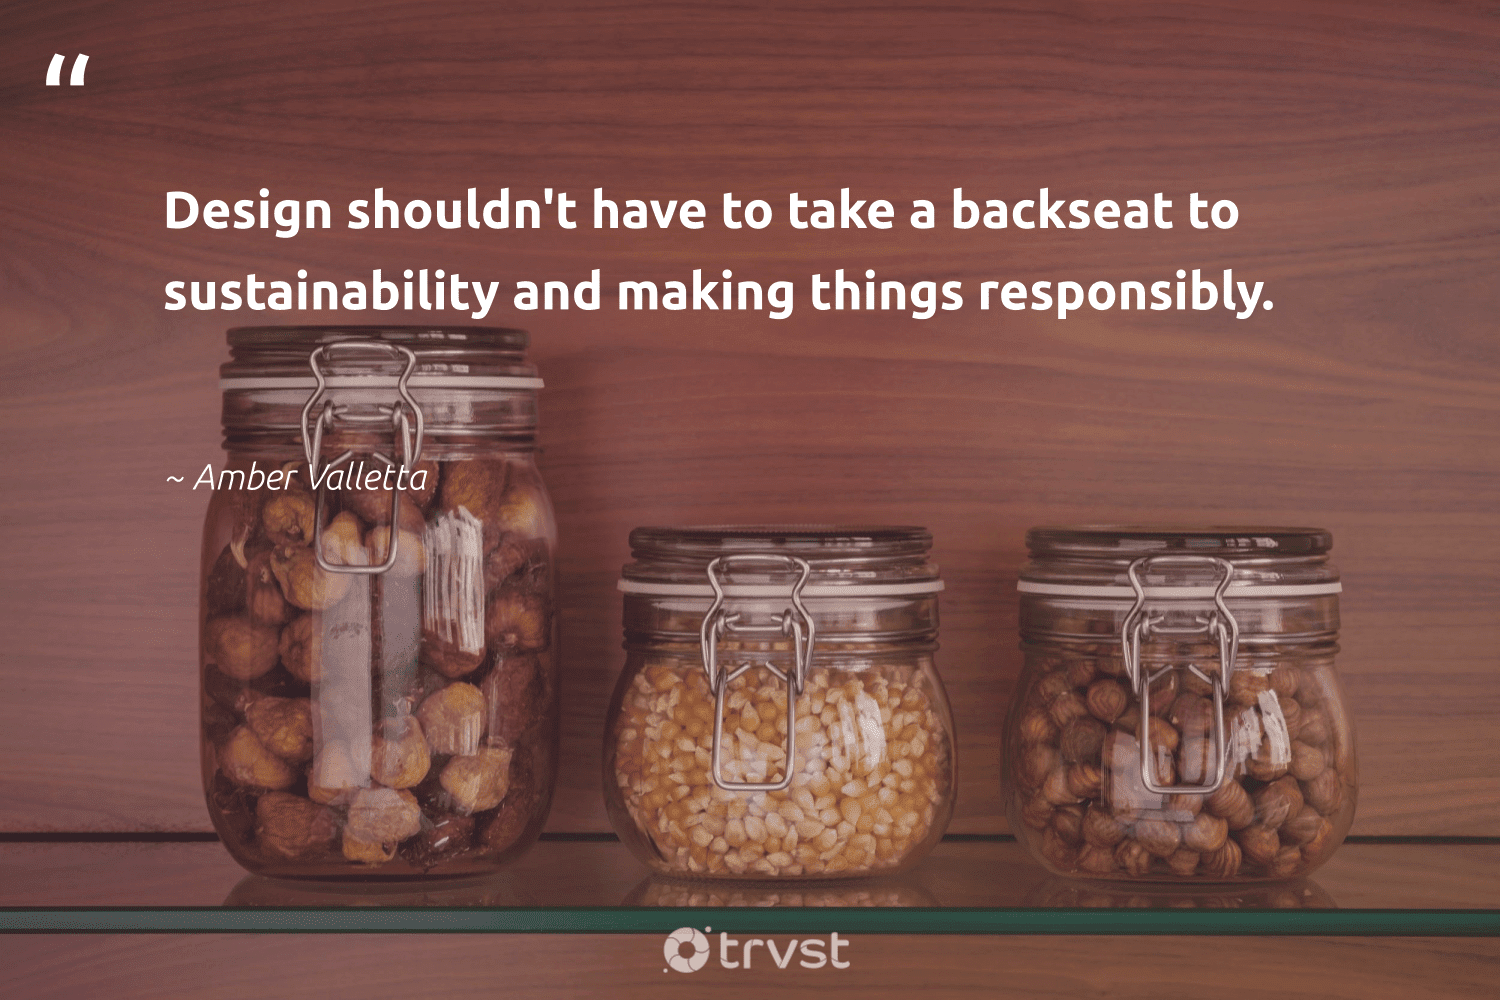 """""""Design shouldn't have to take a backseat to sustainability and making things responsibly.""""  - Amber Valletta #trvst #quotes #sustainability #design #sketchbook #greenliving #nevergiveup #changetheworld #illustration #green #softskills #thinkgreen"""